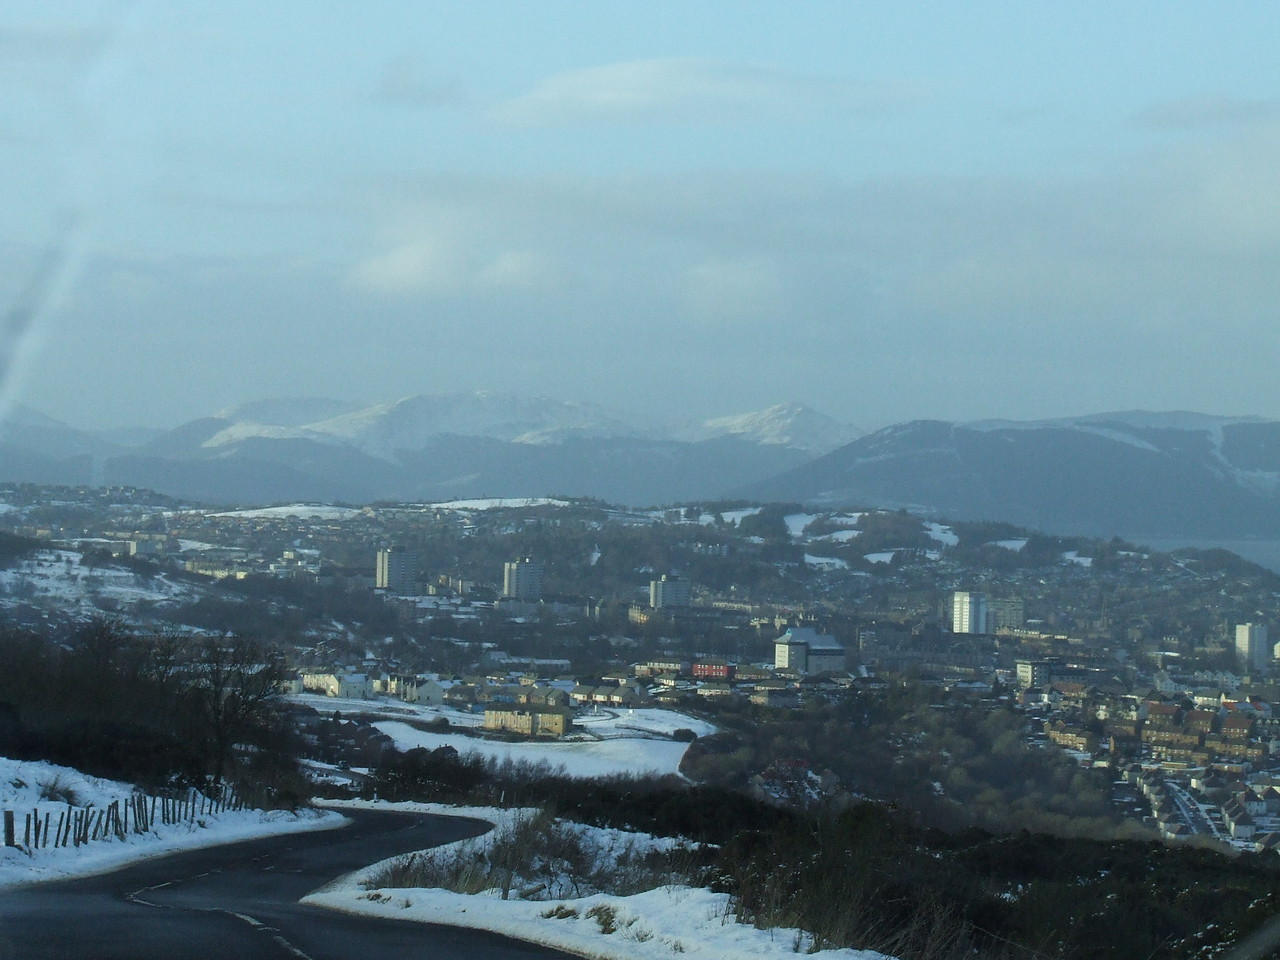 Looking over Greenock after a heavy snowfall